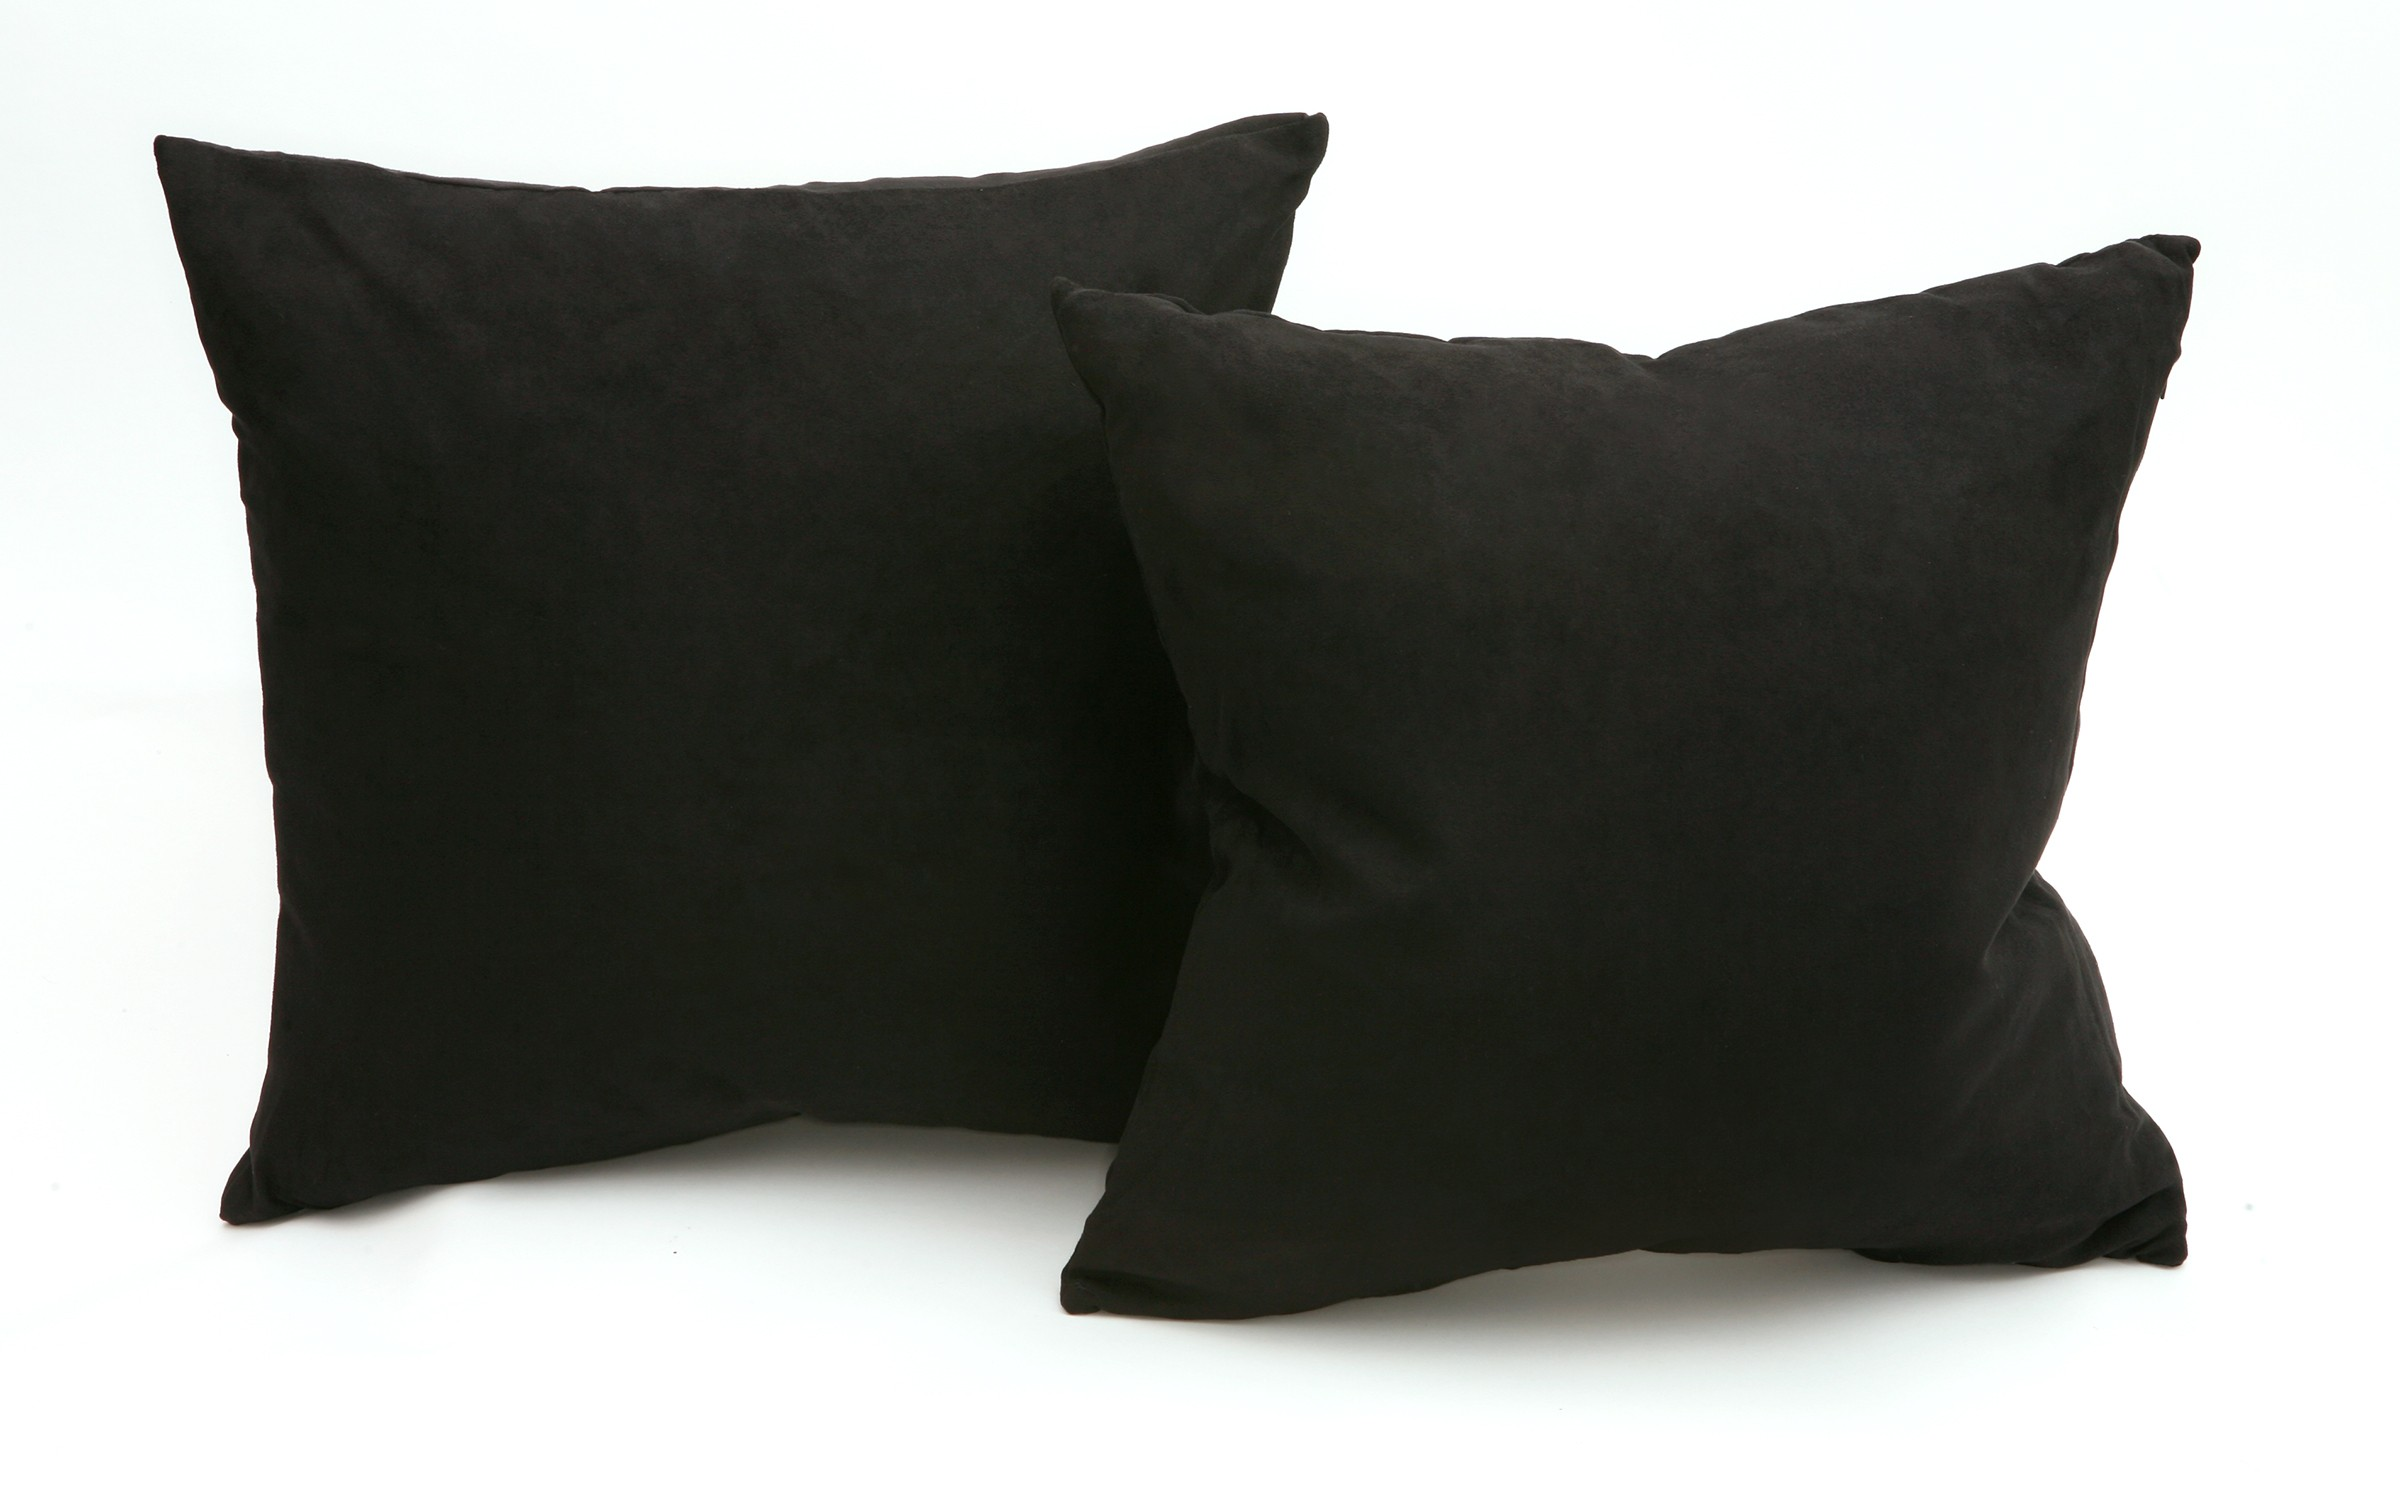 Down Throw Pillow Covers : Microsuede Deco Pillow - 18x18 - Feather And Down Filled Pillows - Pack of 2 - Black